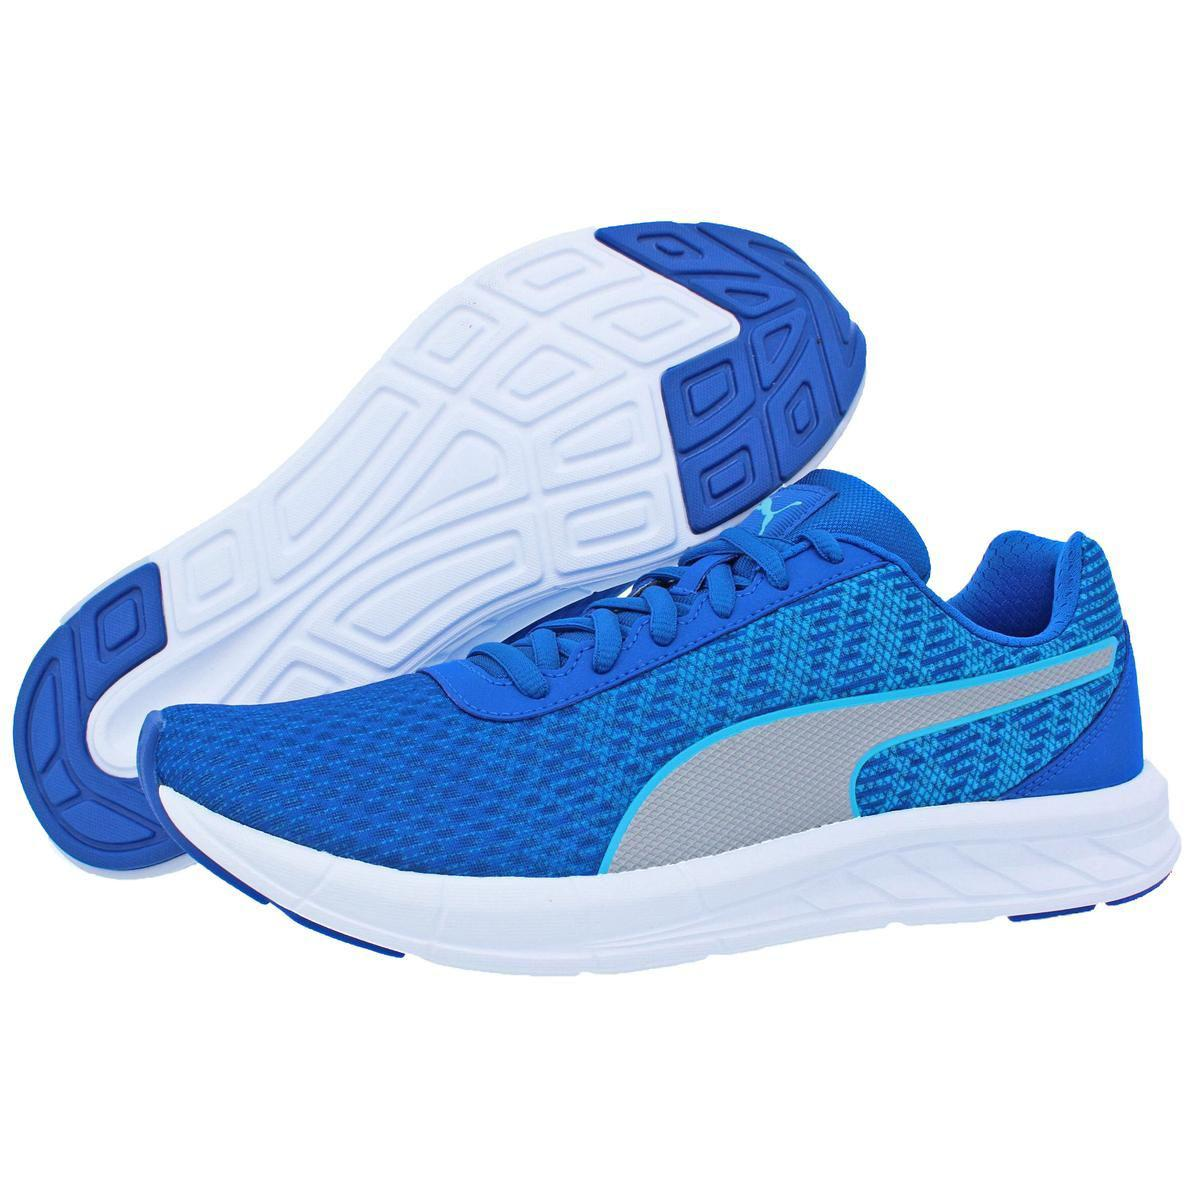 Running Shoes Foam Puma Lyst Comet In Blue Soft Womens Training 8dqPqw